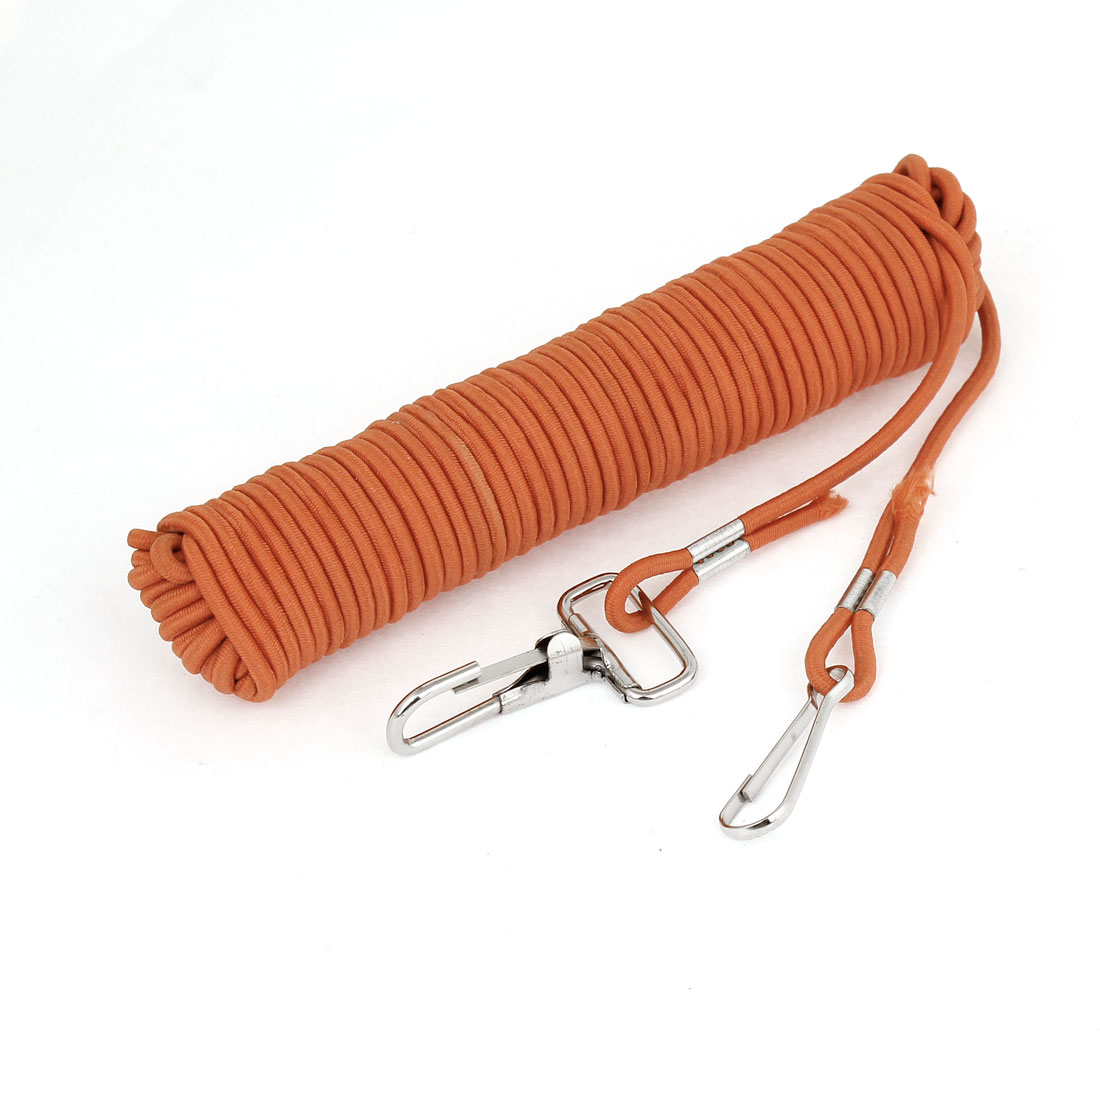 Metal Clip Hook Clasp Flexible Fishing Rope Cable 8M 26.2Ft Orange